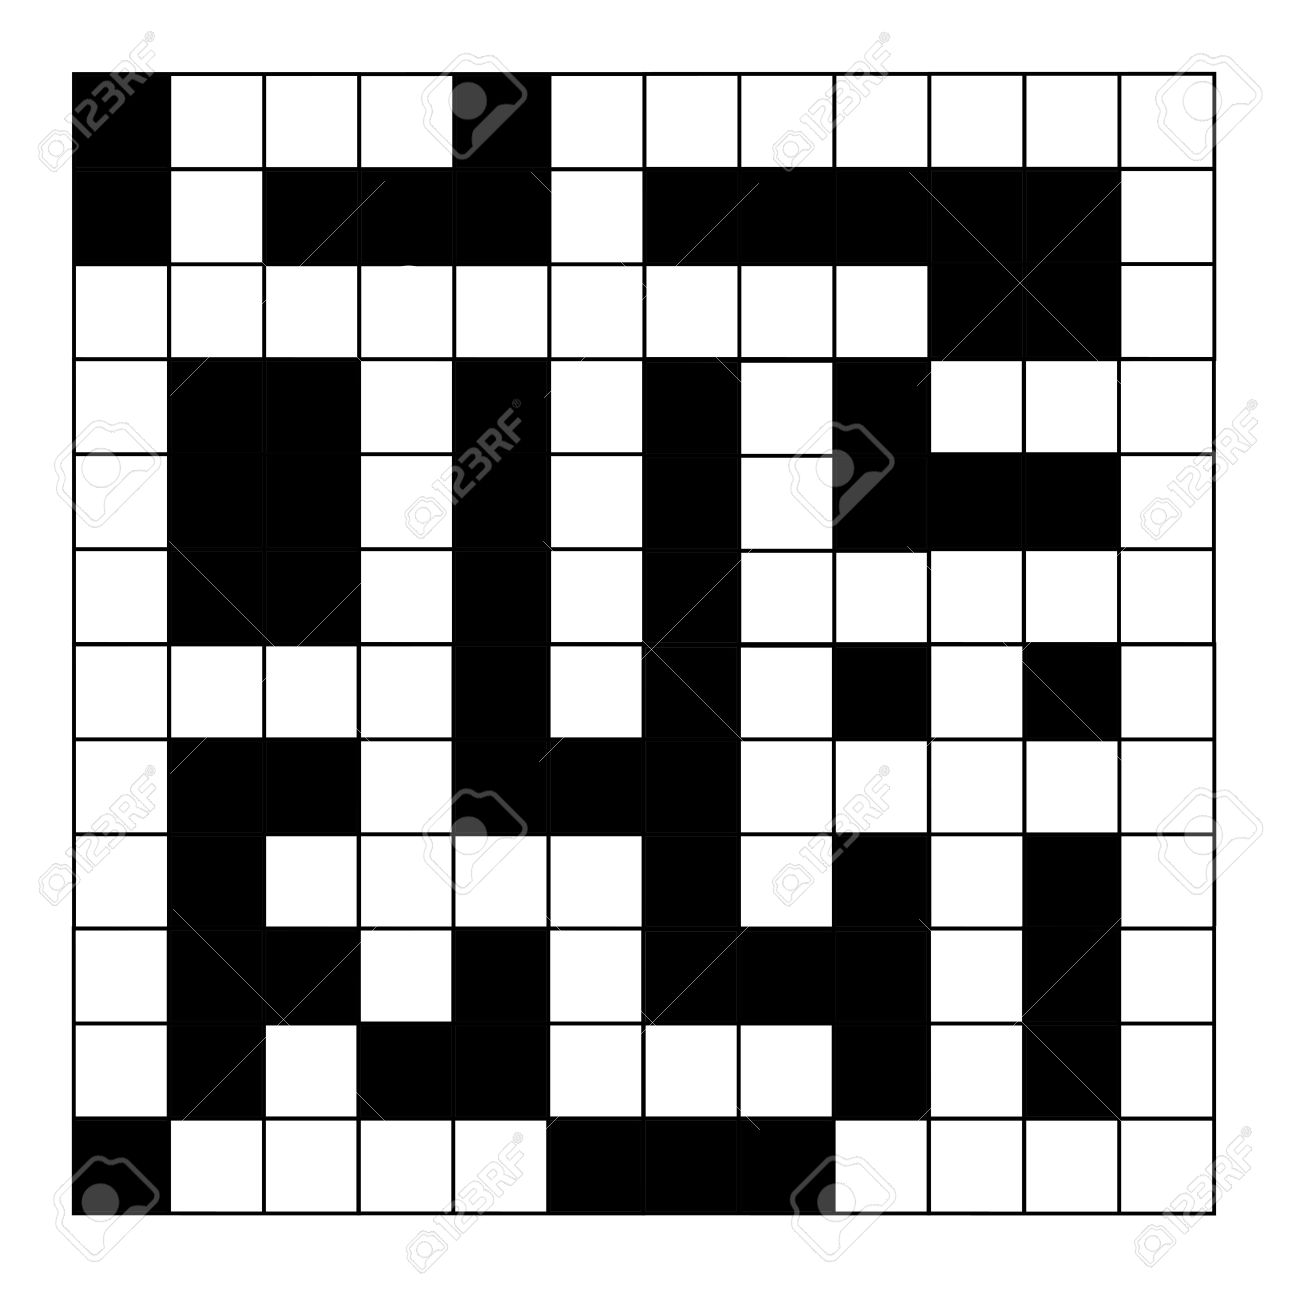 Blank Crossword Puzzle Isolated On White Background Stock Photo 1300x1298